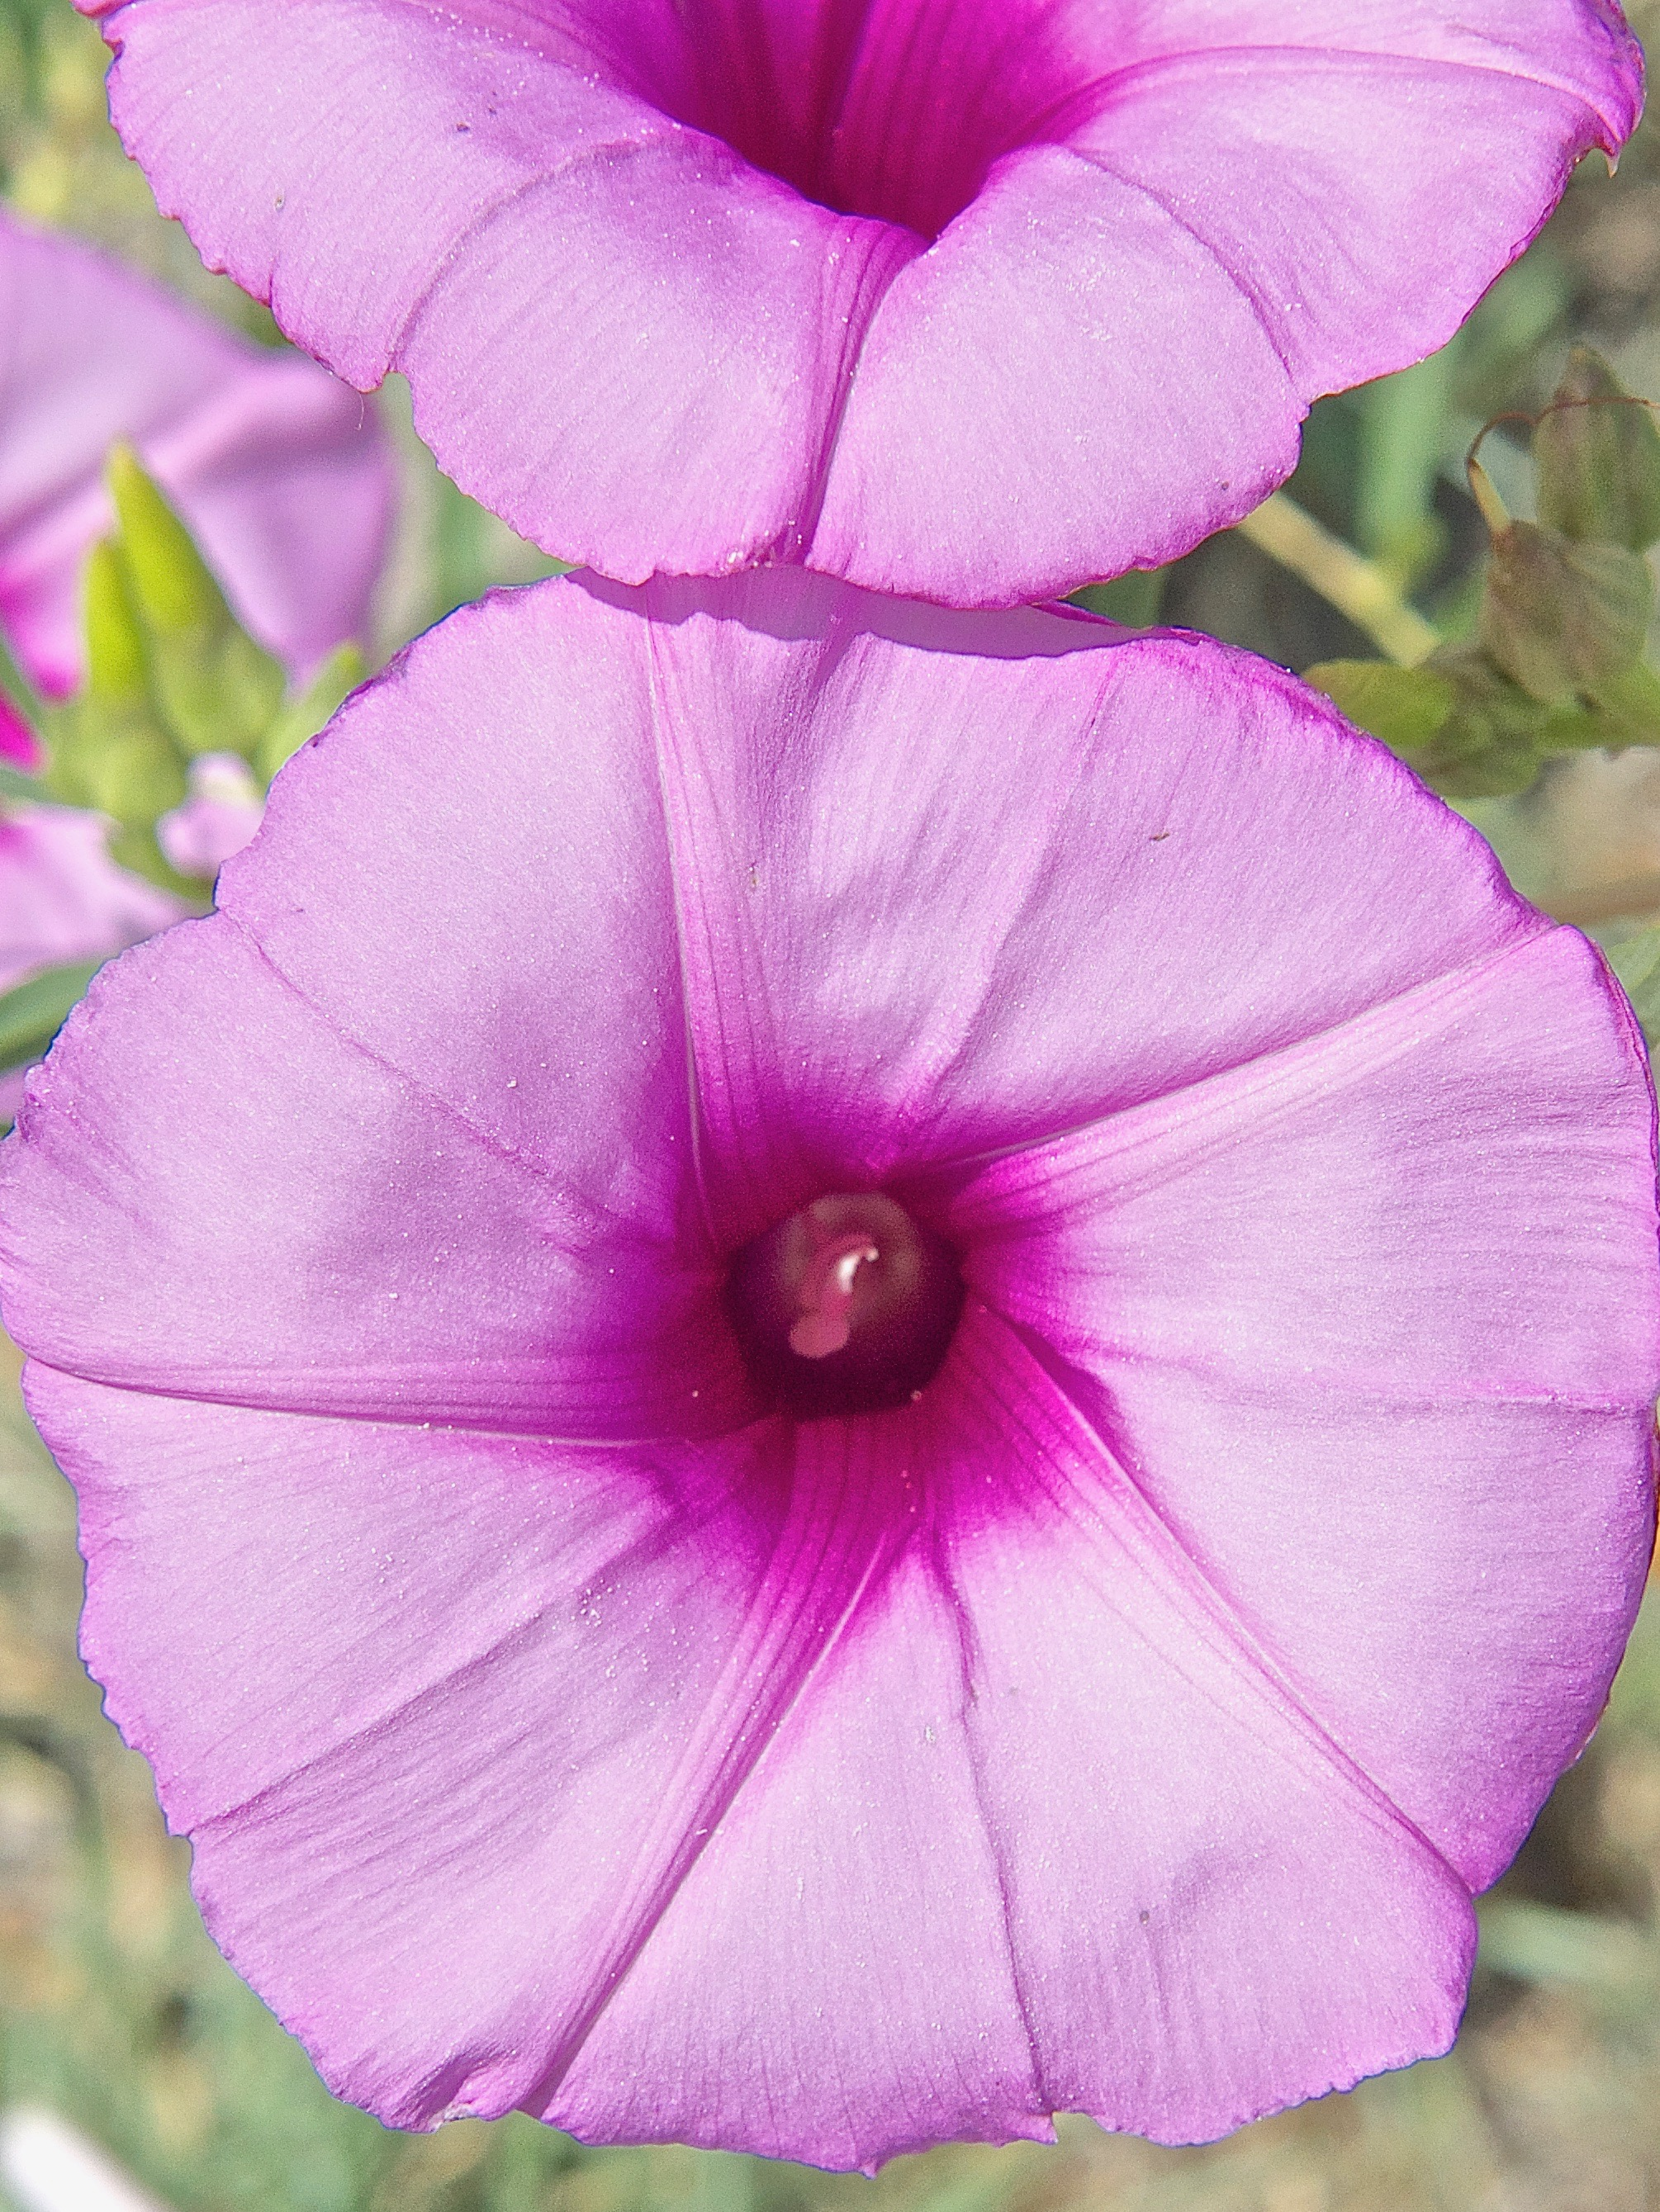 Bush Morning Glory (Ipomoea leptophylla)